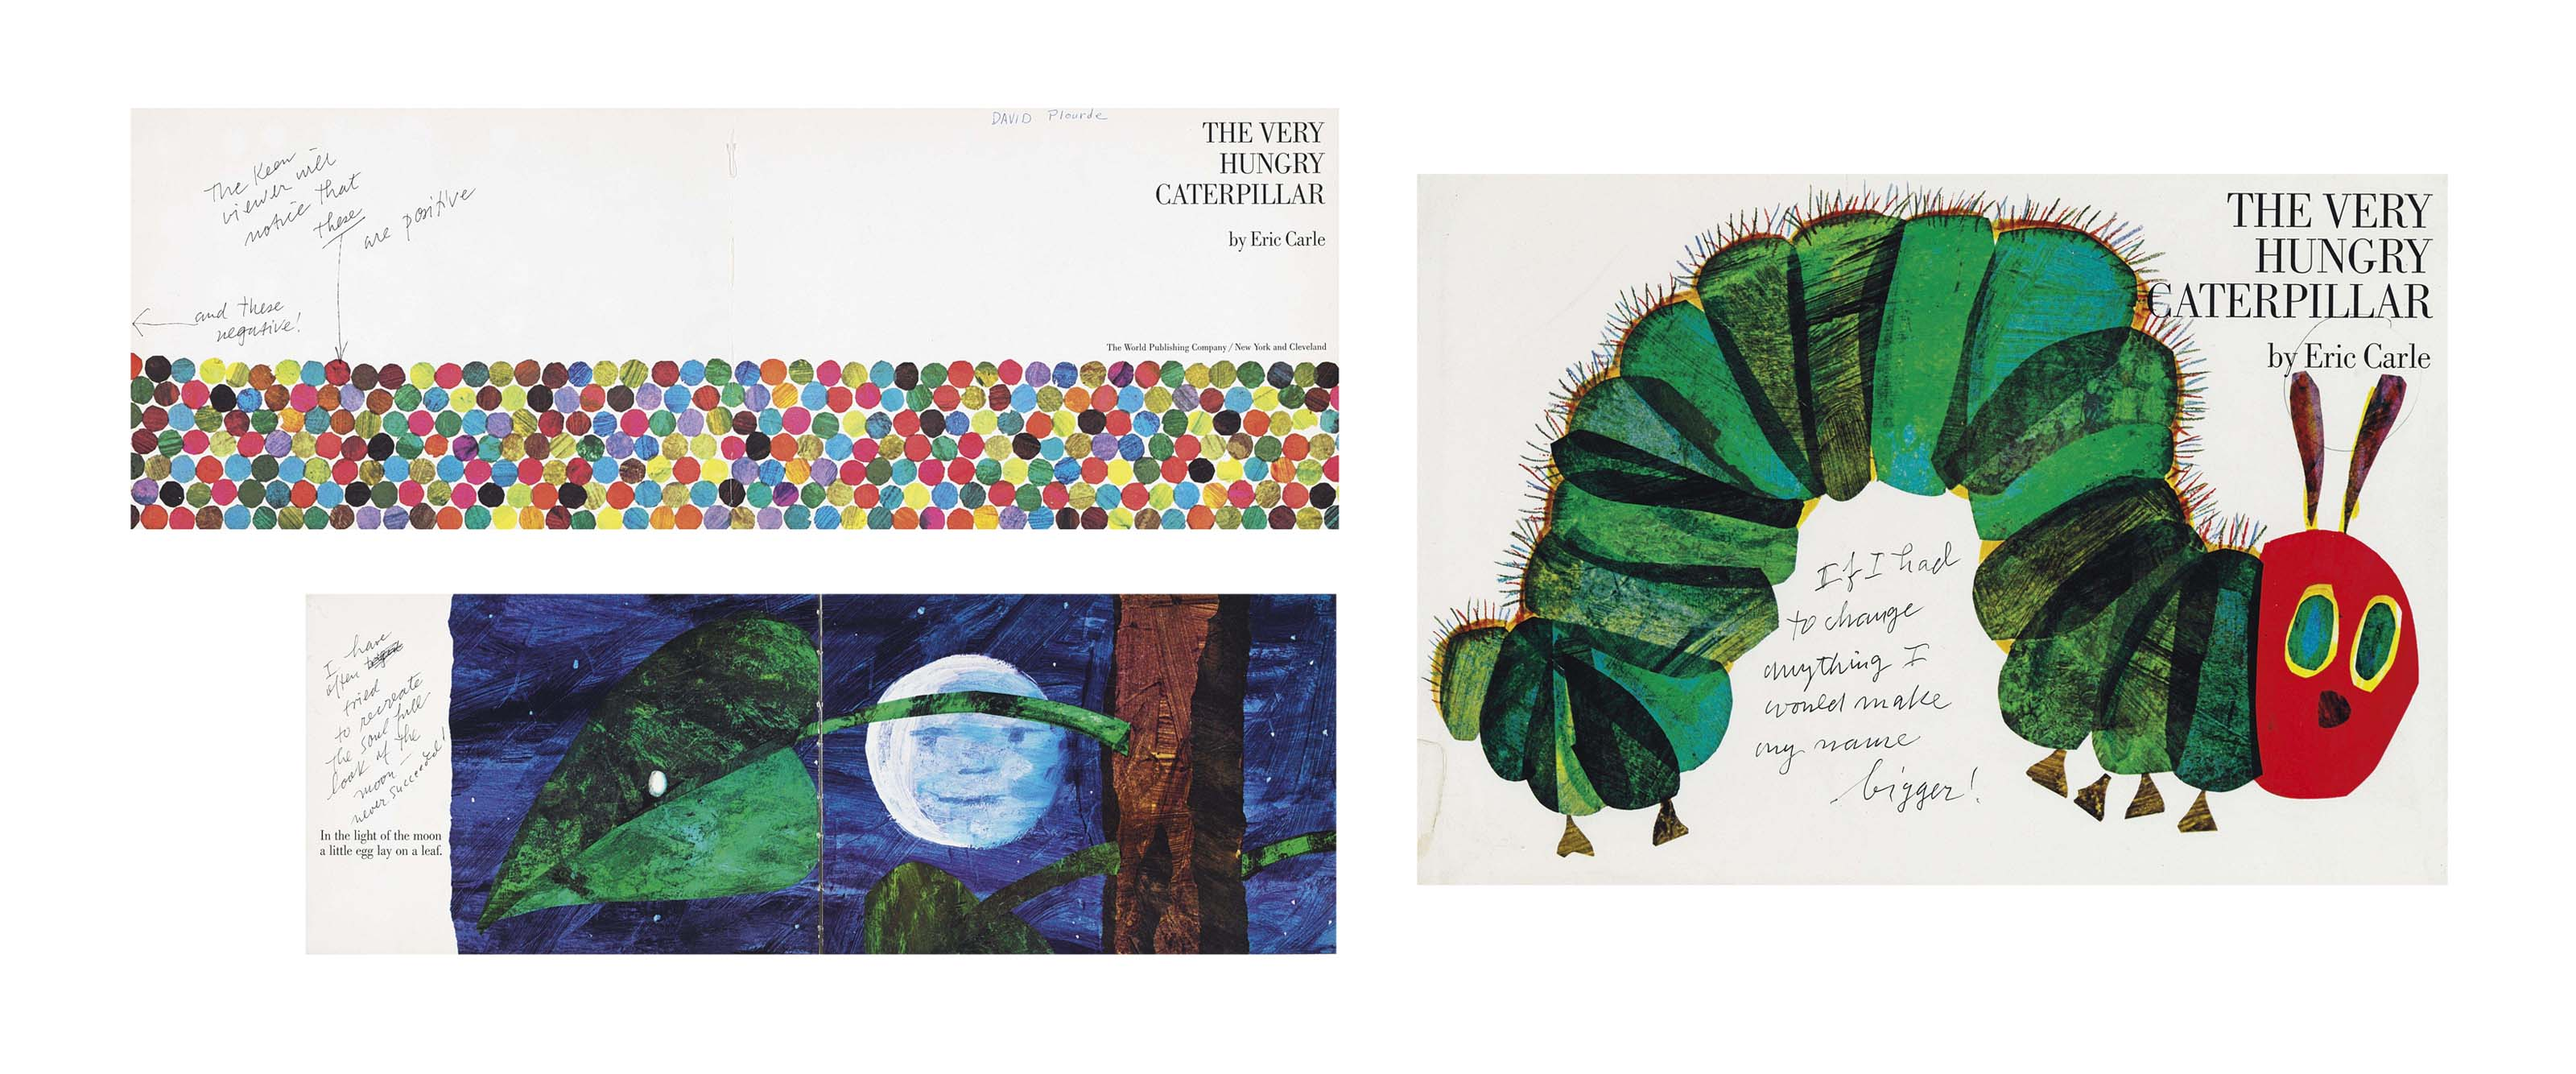 CARLE, Eric (b. 1929). The Very Hungry Caterpillar. New York and Cleveland: The World Publishing Company, [1969]. Oblong 4°. Original pictorial boards; pictorial dust jacket. Provenance: David Plourde (ownership signature on title).